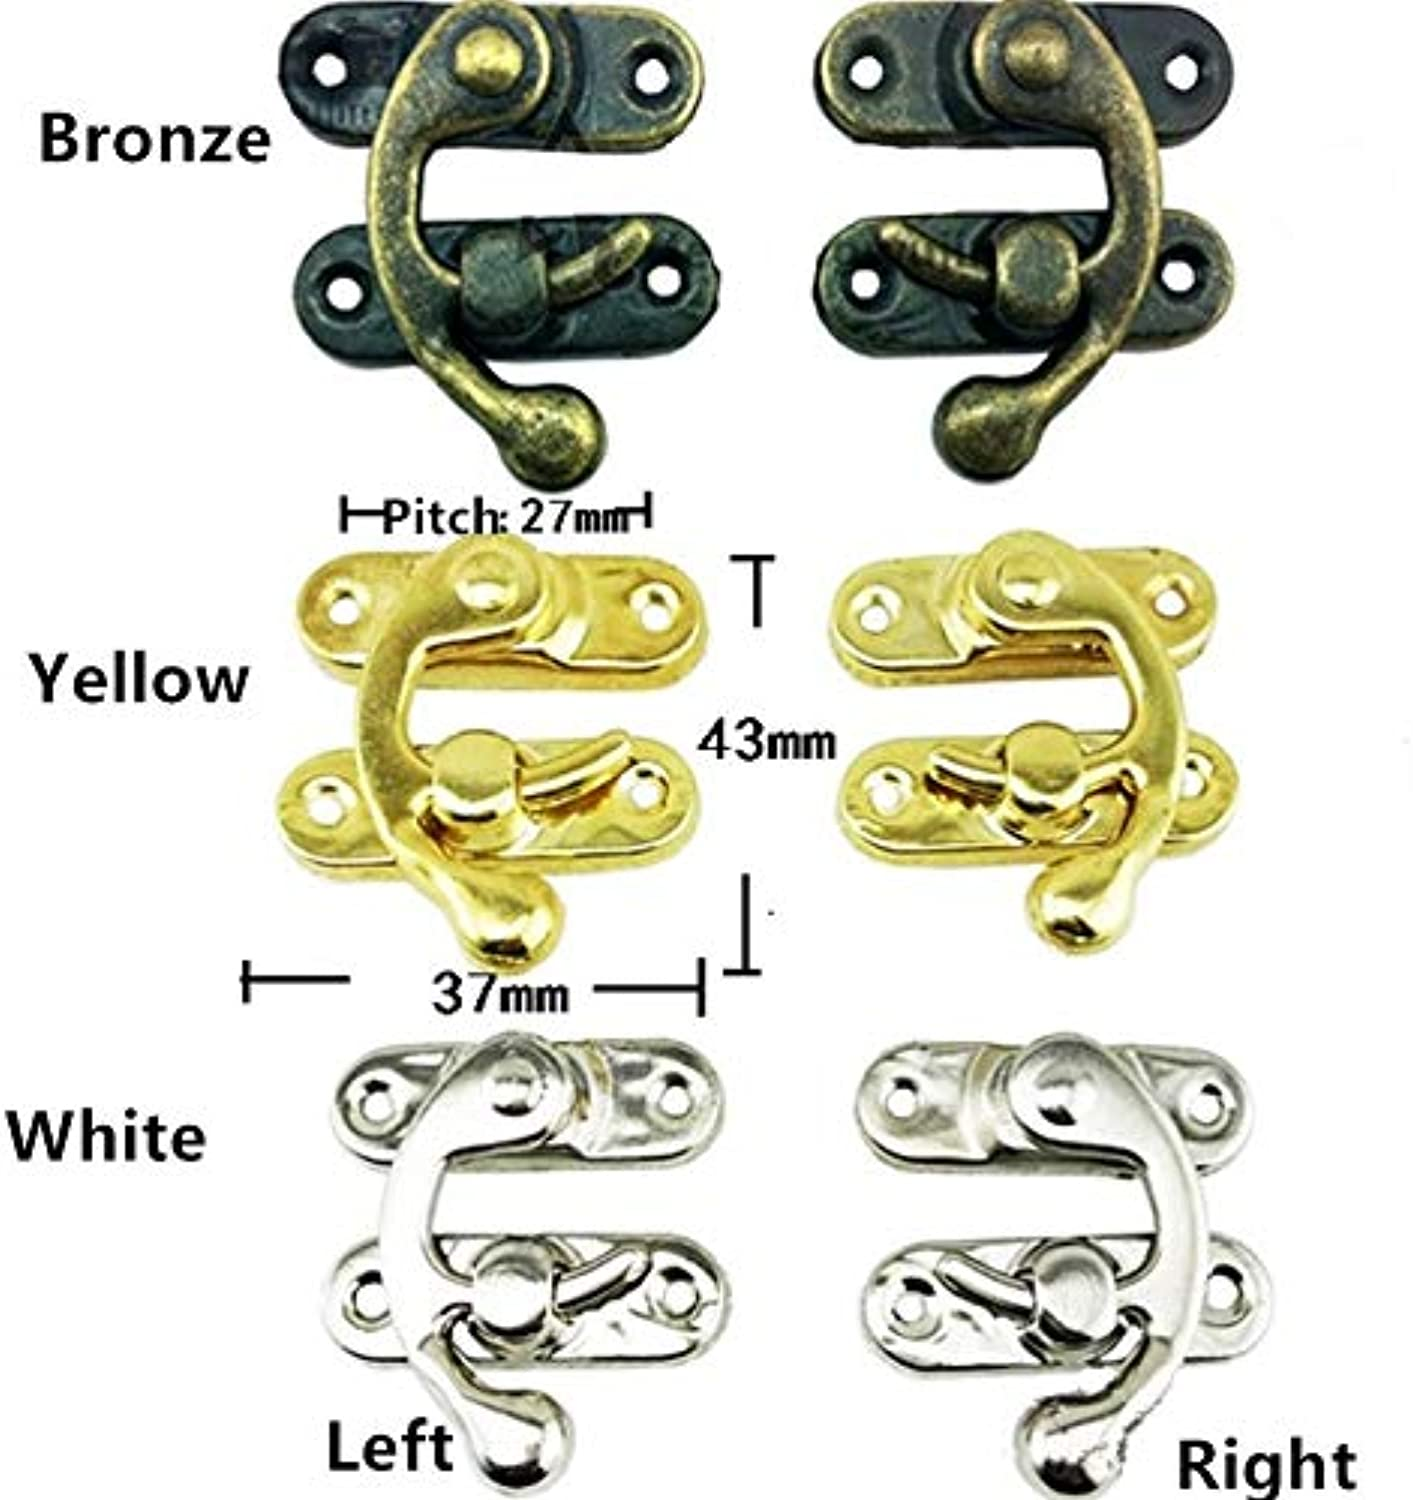 Antique Box Suitcase Toggle Latch Buckles,Antique Iron Lock,Wooden Box Lock,37  43mm,60Sets  (color  Yellow Right)